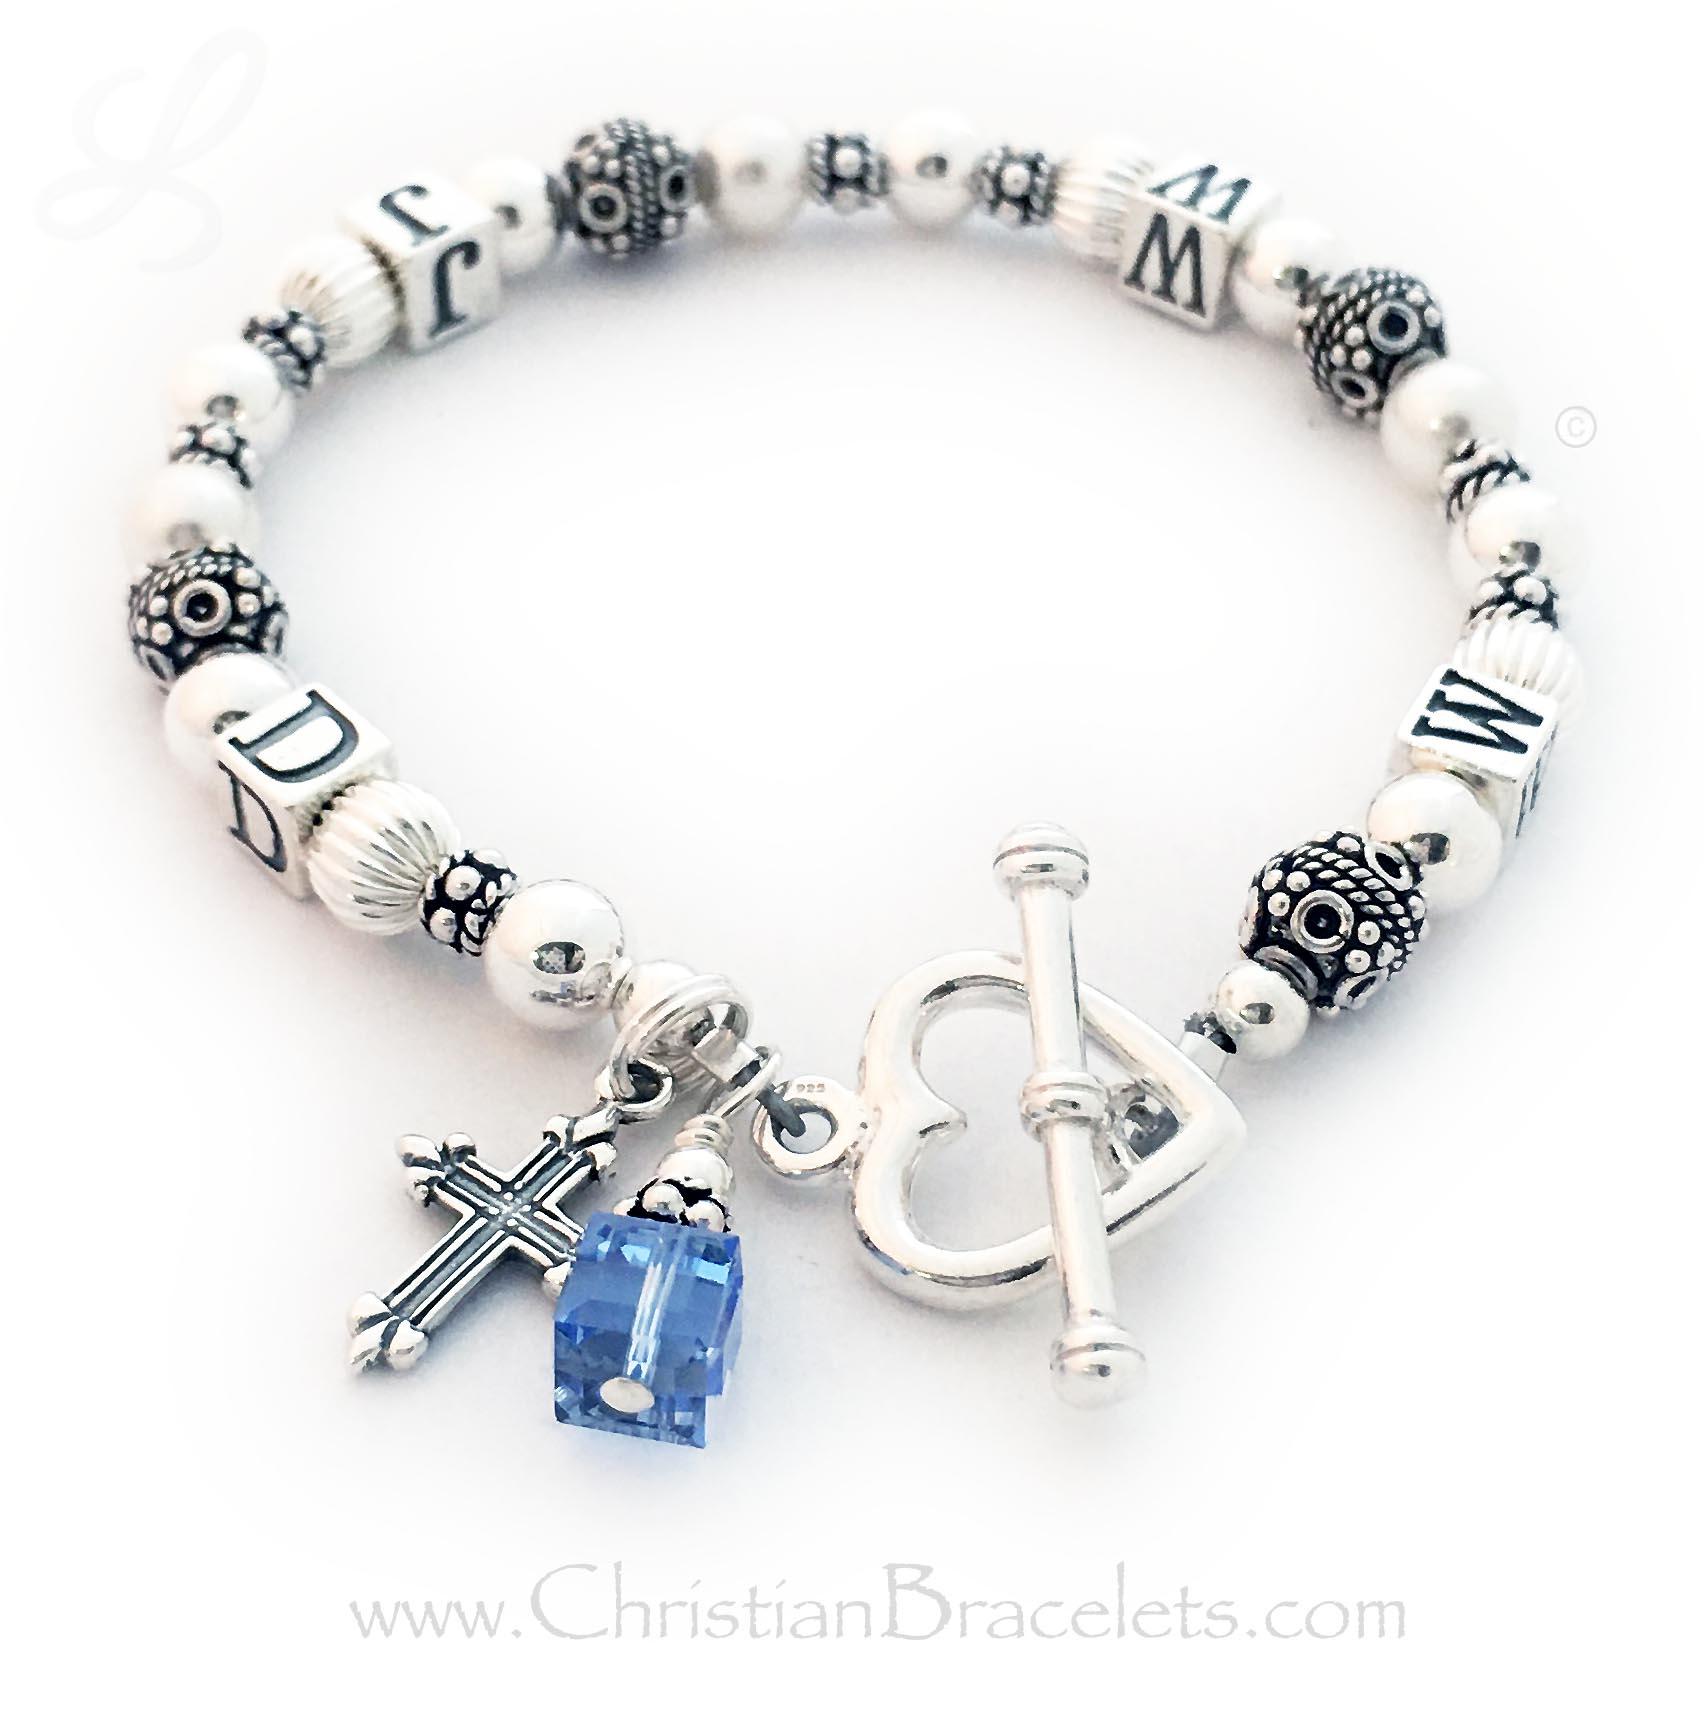 DBL-WWJD-1S  What Would Jesus Do Bracelet is shown with 3 add-ons: They added a Fancy Cross Charm, a December or Blue Topaz Birthstone Crystal Charm and upgraded to a Heart Toggle Clasp. Size: 7""